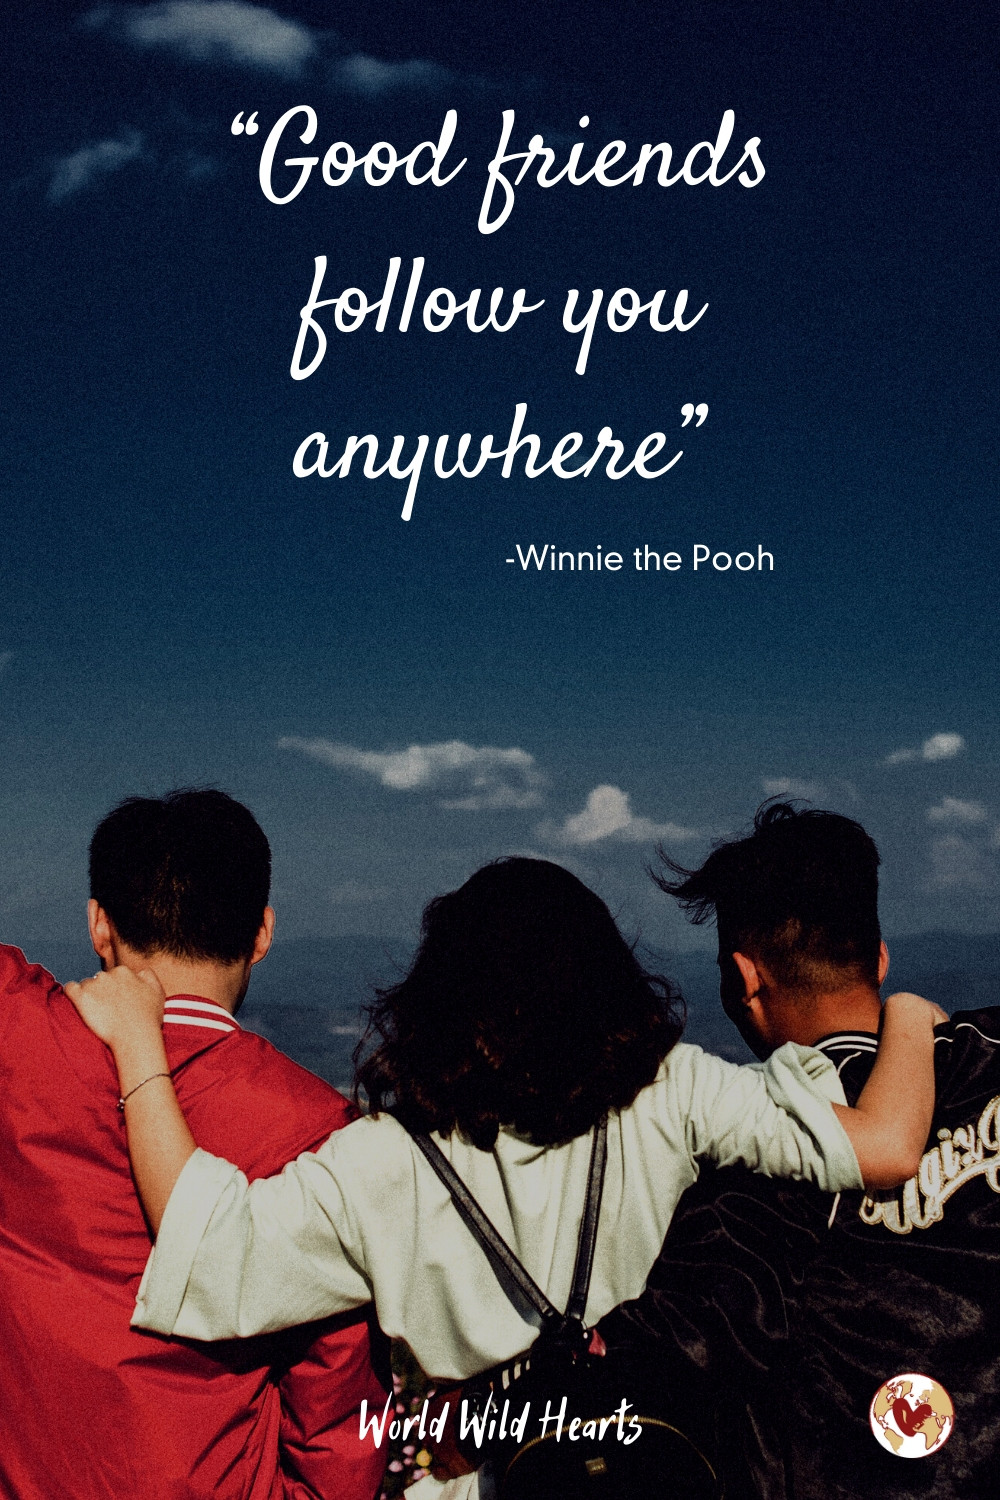 Good friends follow you anywhere quote